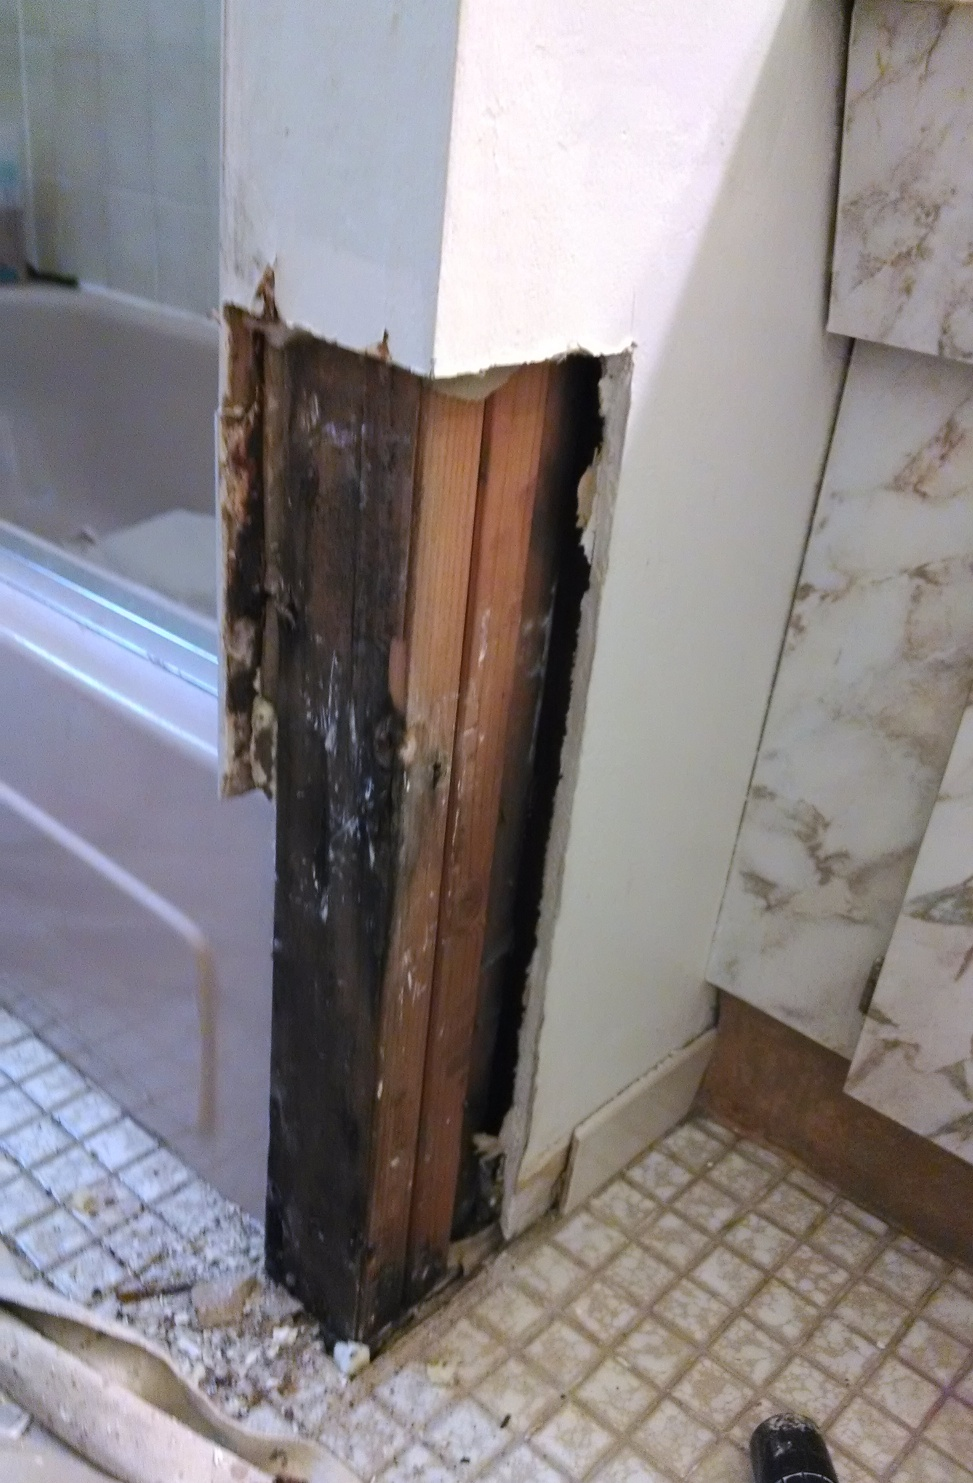 Pictures Of Mold In The Home - Mold in bathroom wall